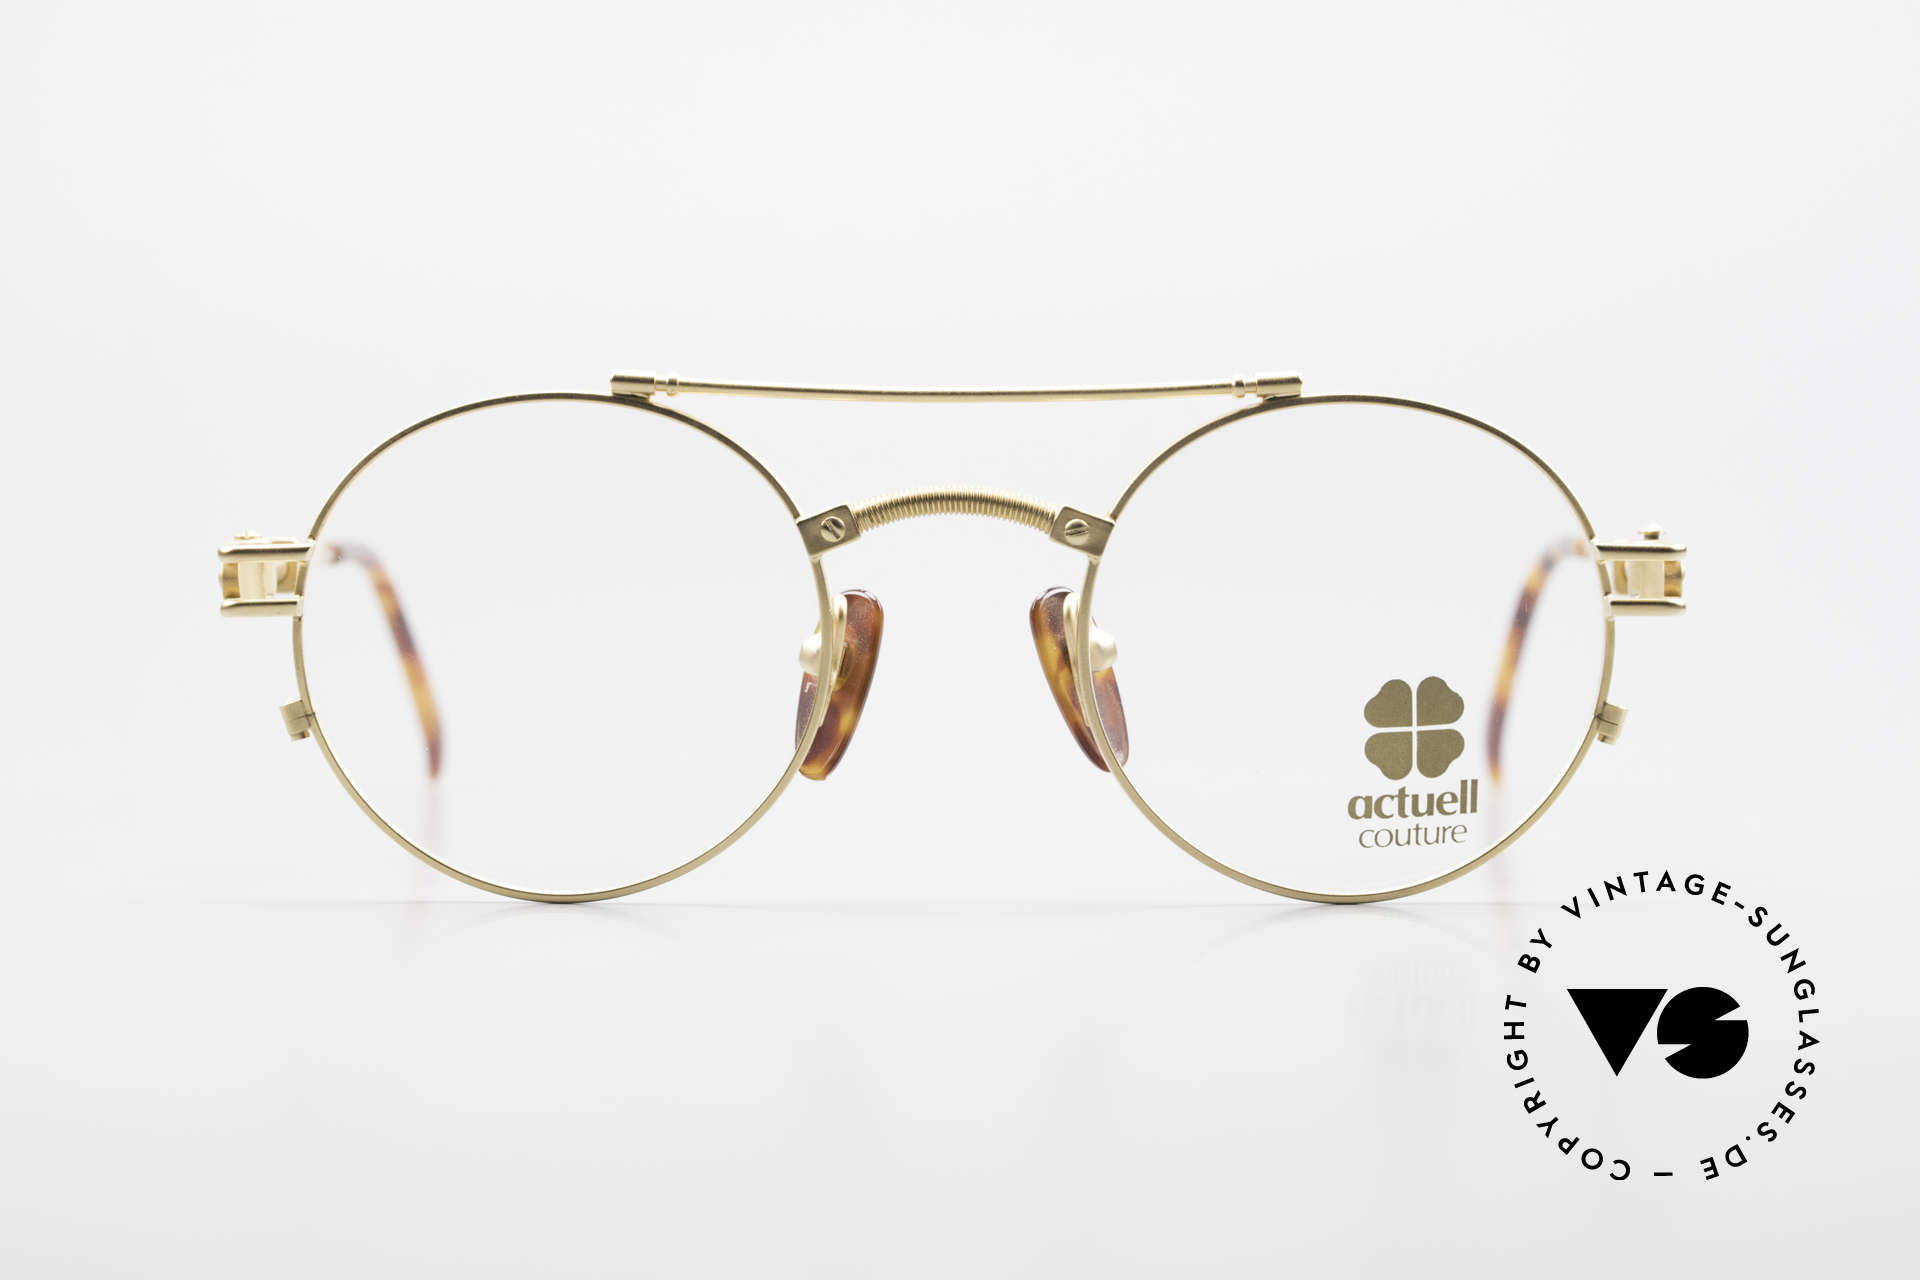 Actuell Couture 802 Round 80's Glasses Steampunk, top-notch quality and material combination, Made for Men and Women